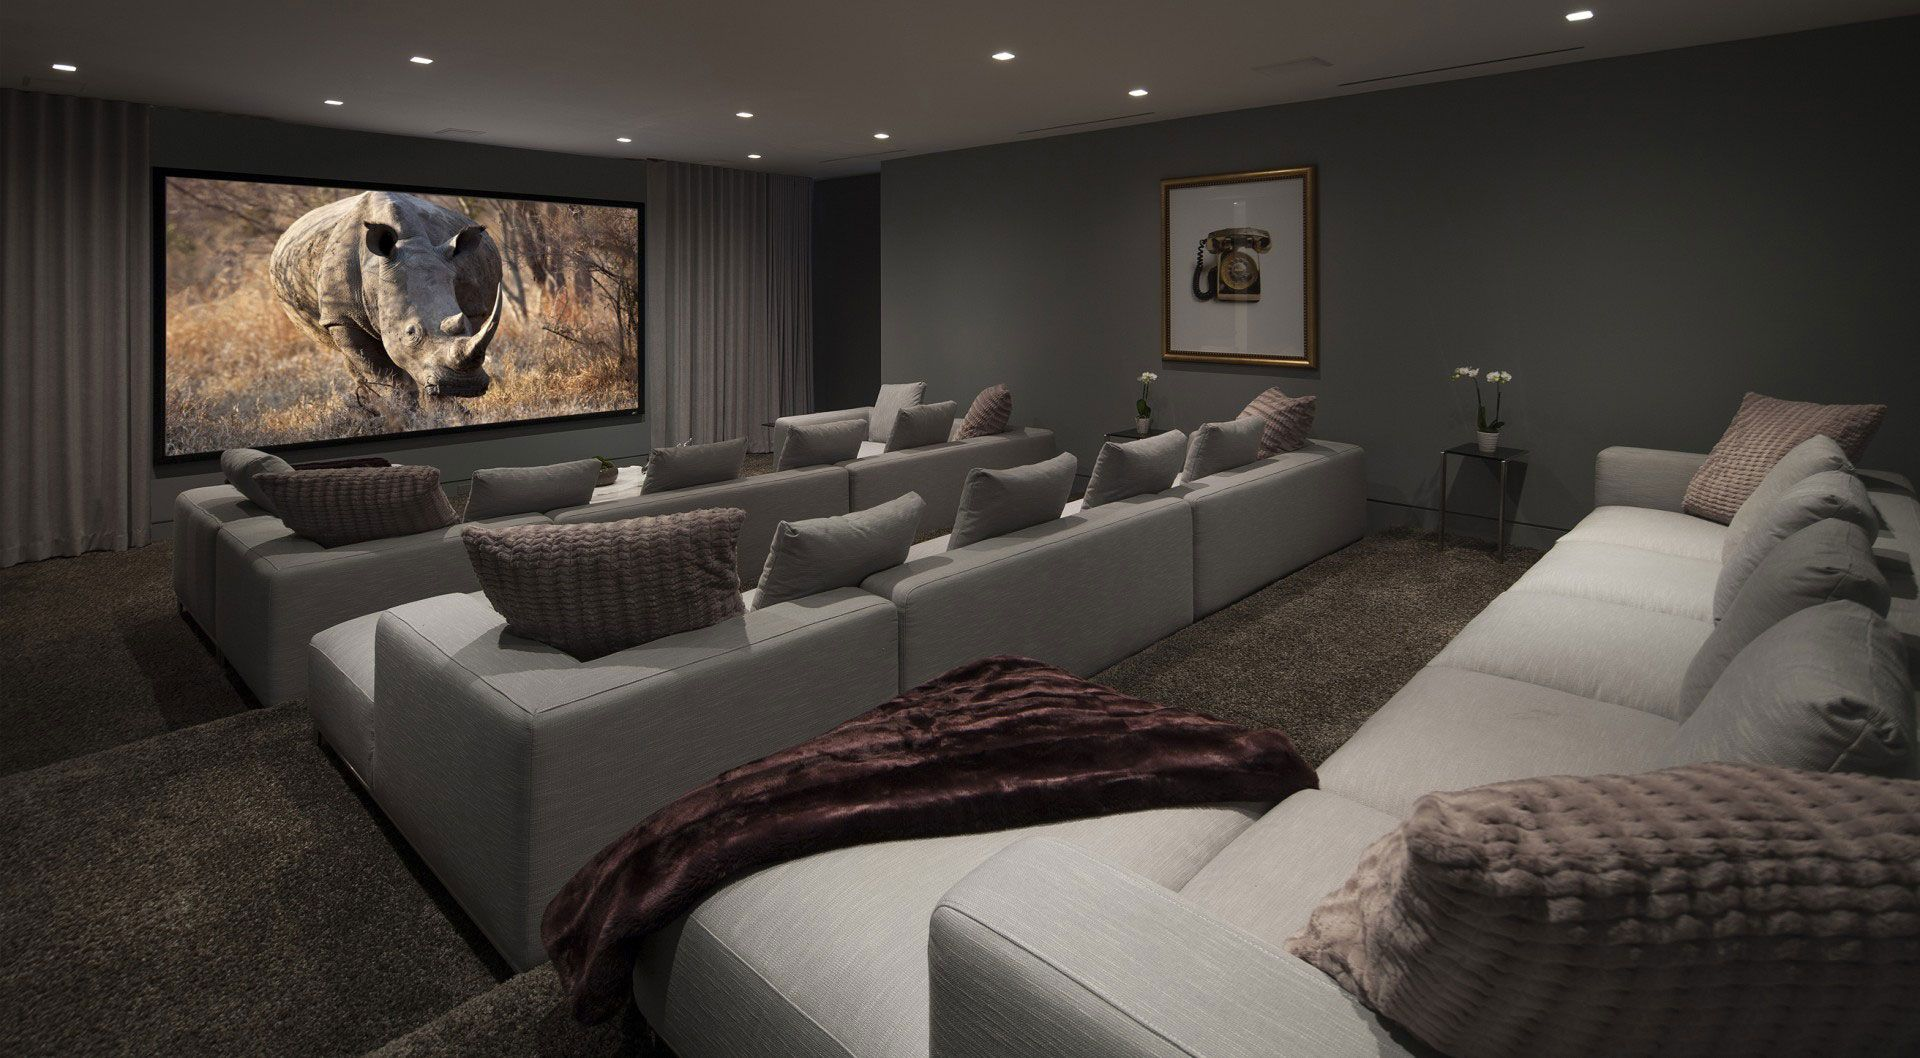 Living Room Grey Fabric Seats Connected By Large Lcd Tv On Grey Wall And Som